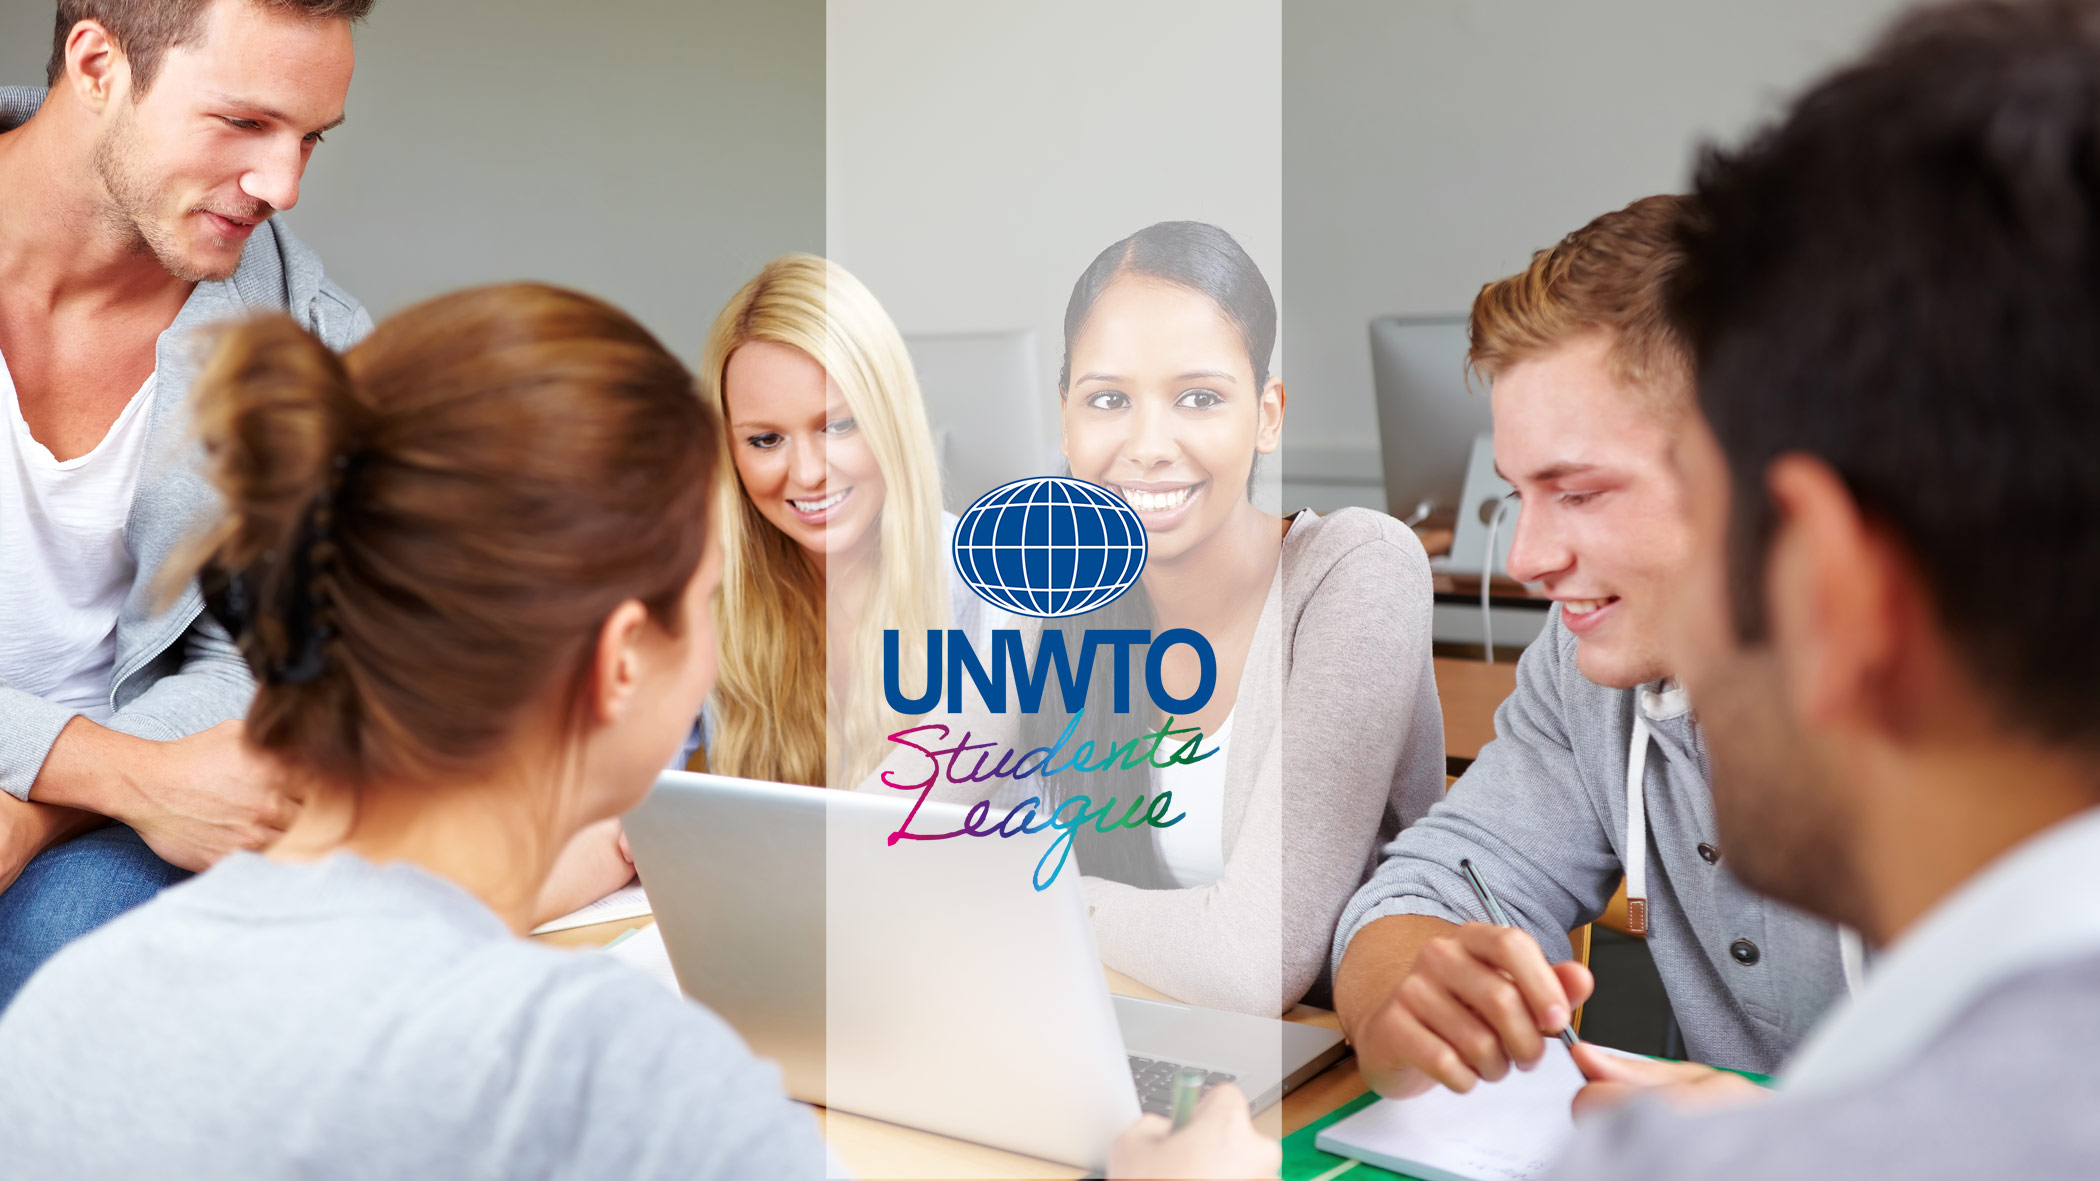 UNWTO Students' League - Participating